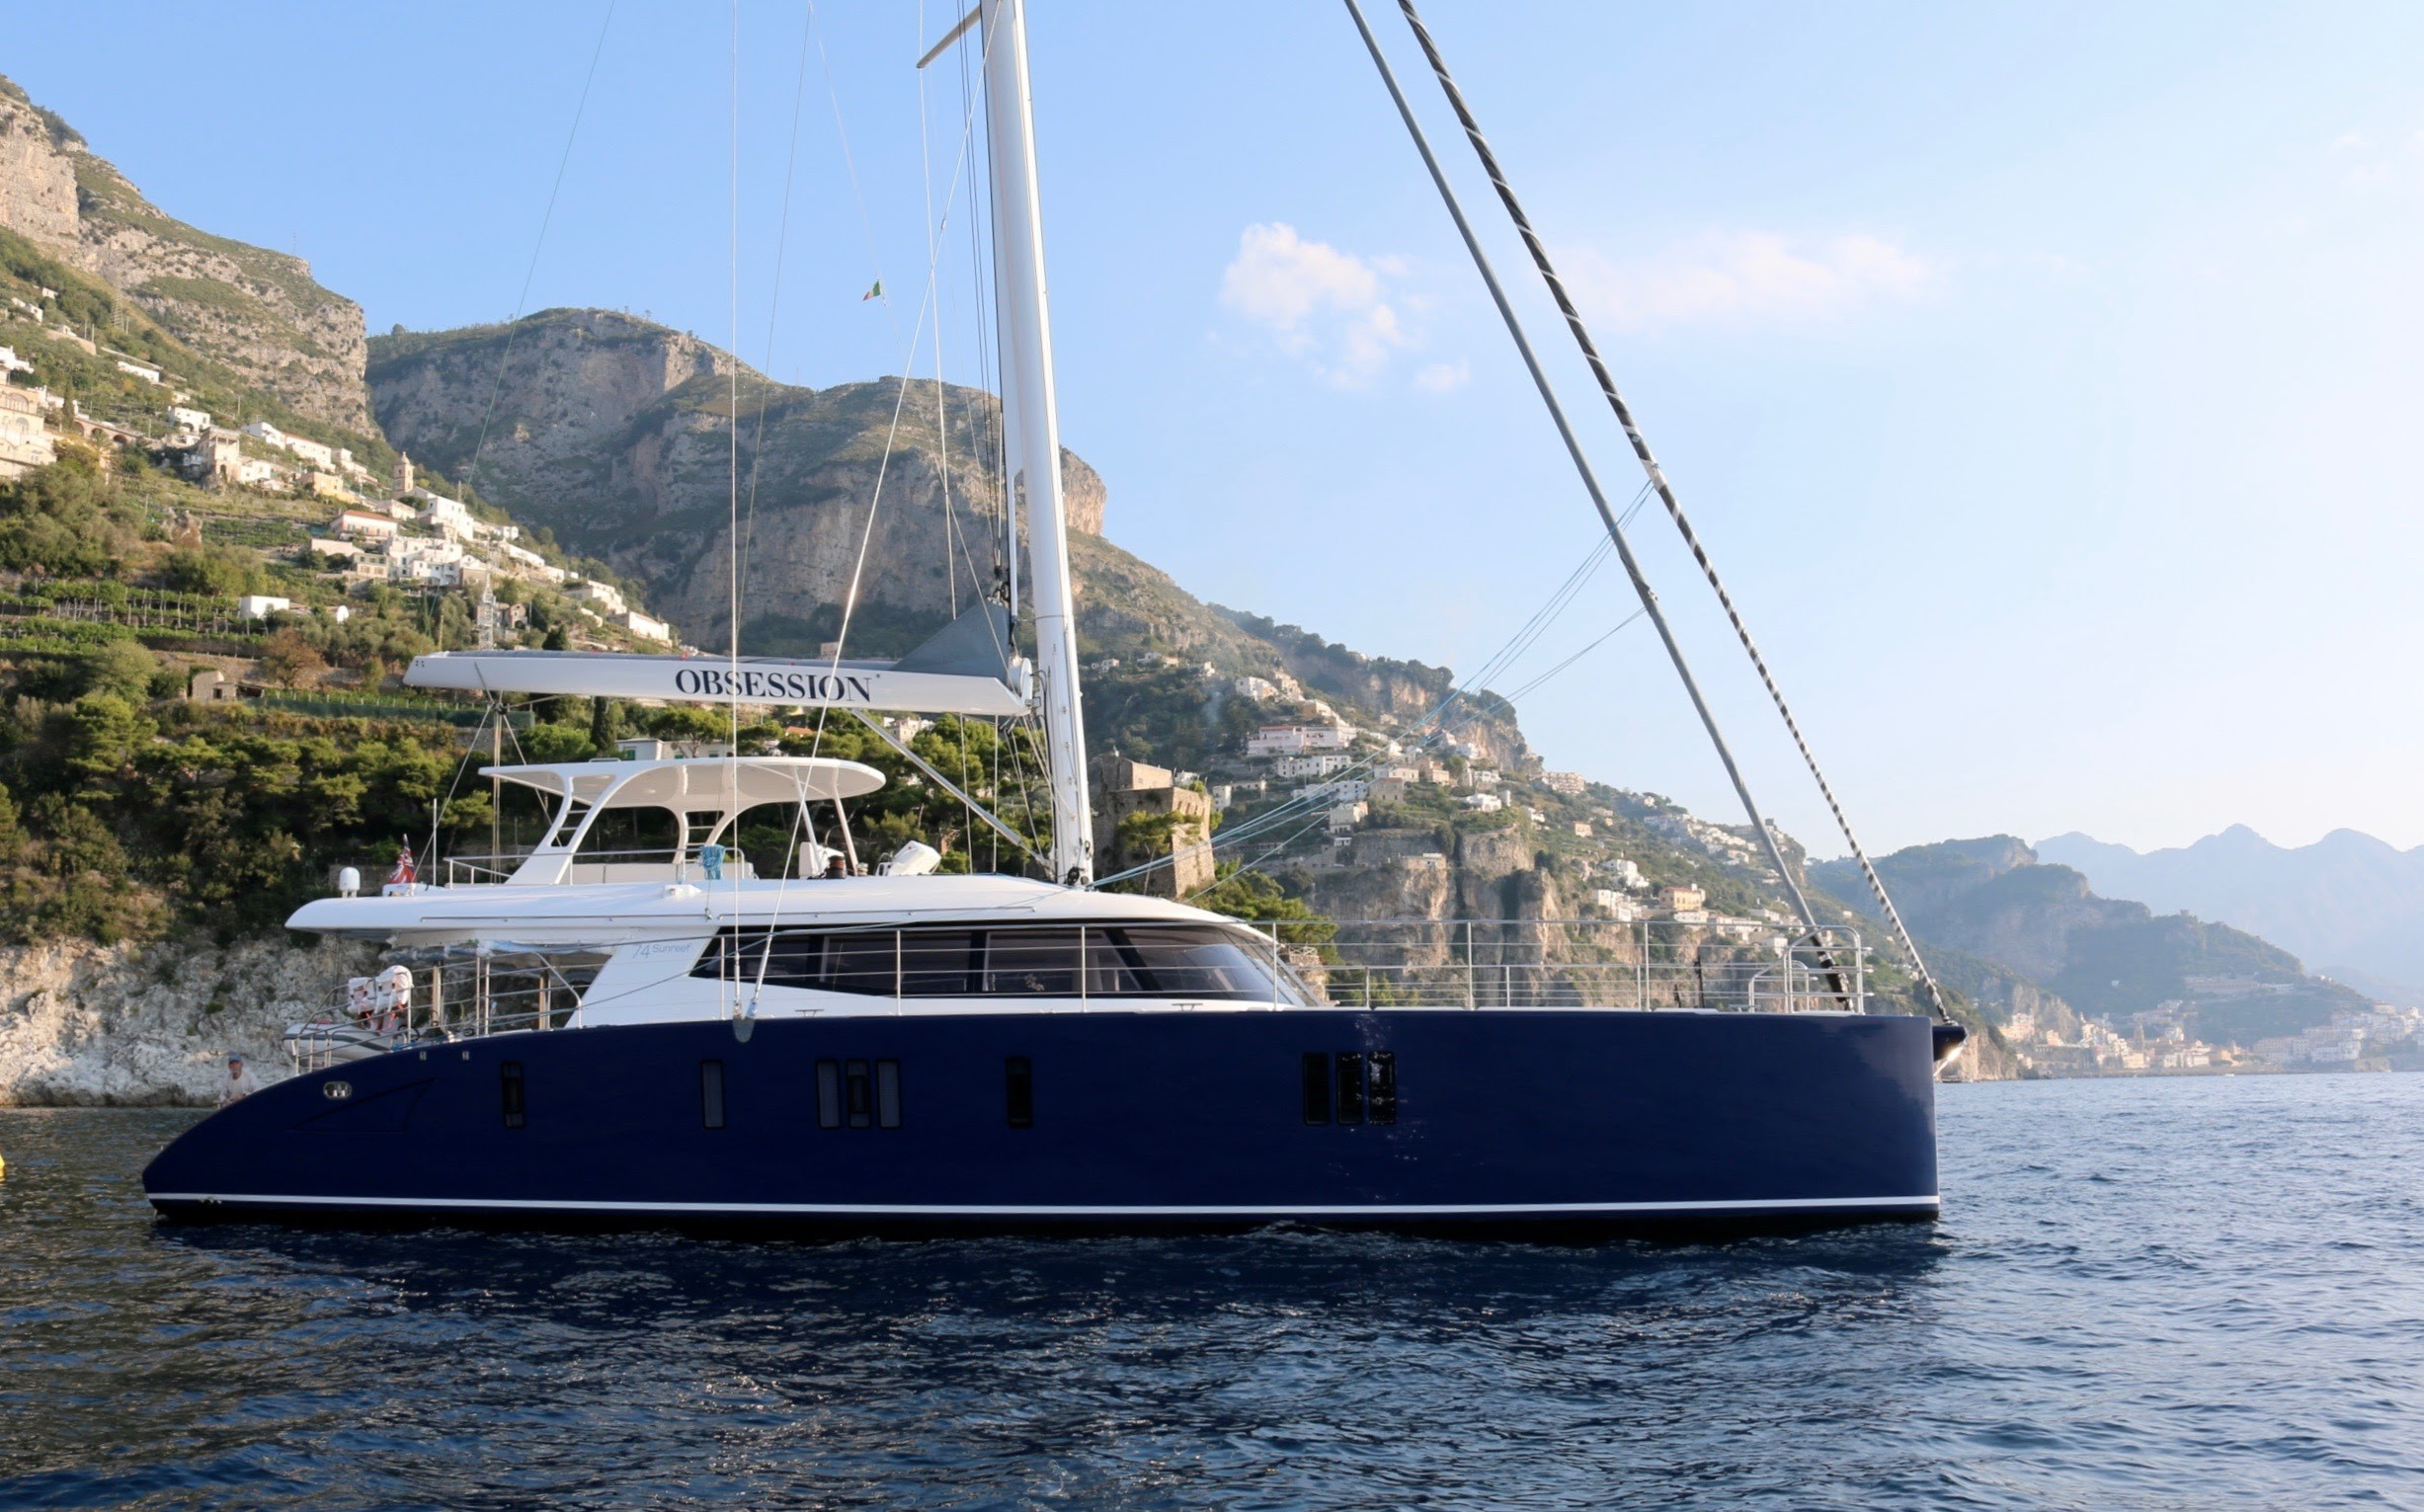 5 DEC 2019 Latest Listings and Price Cuts on Catamarans.com